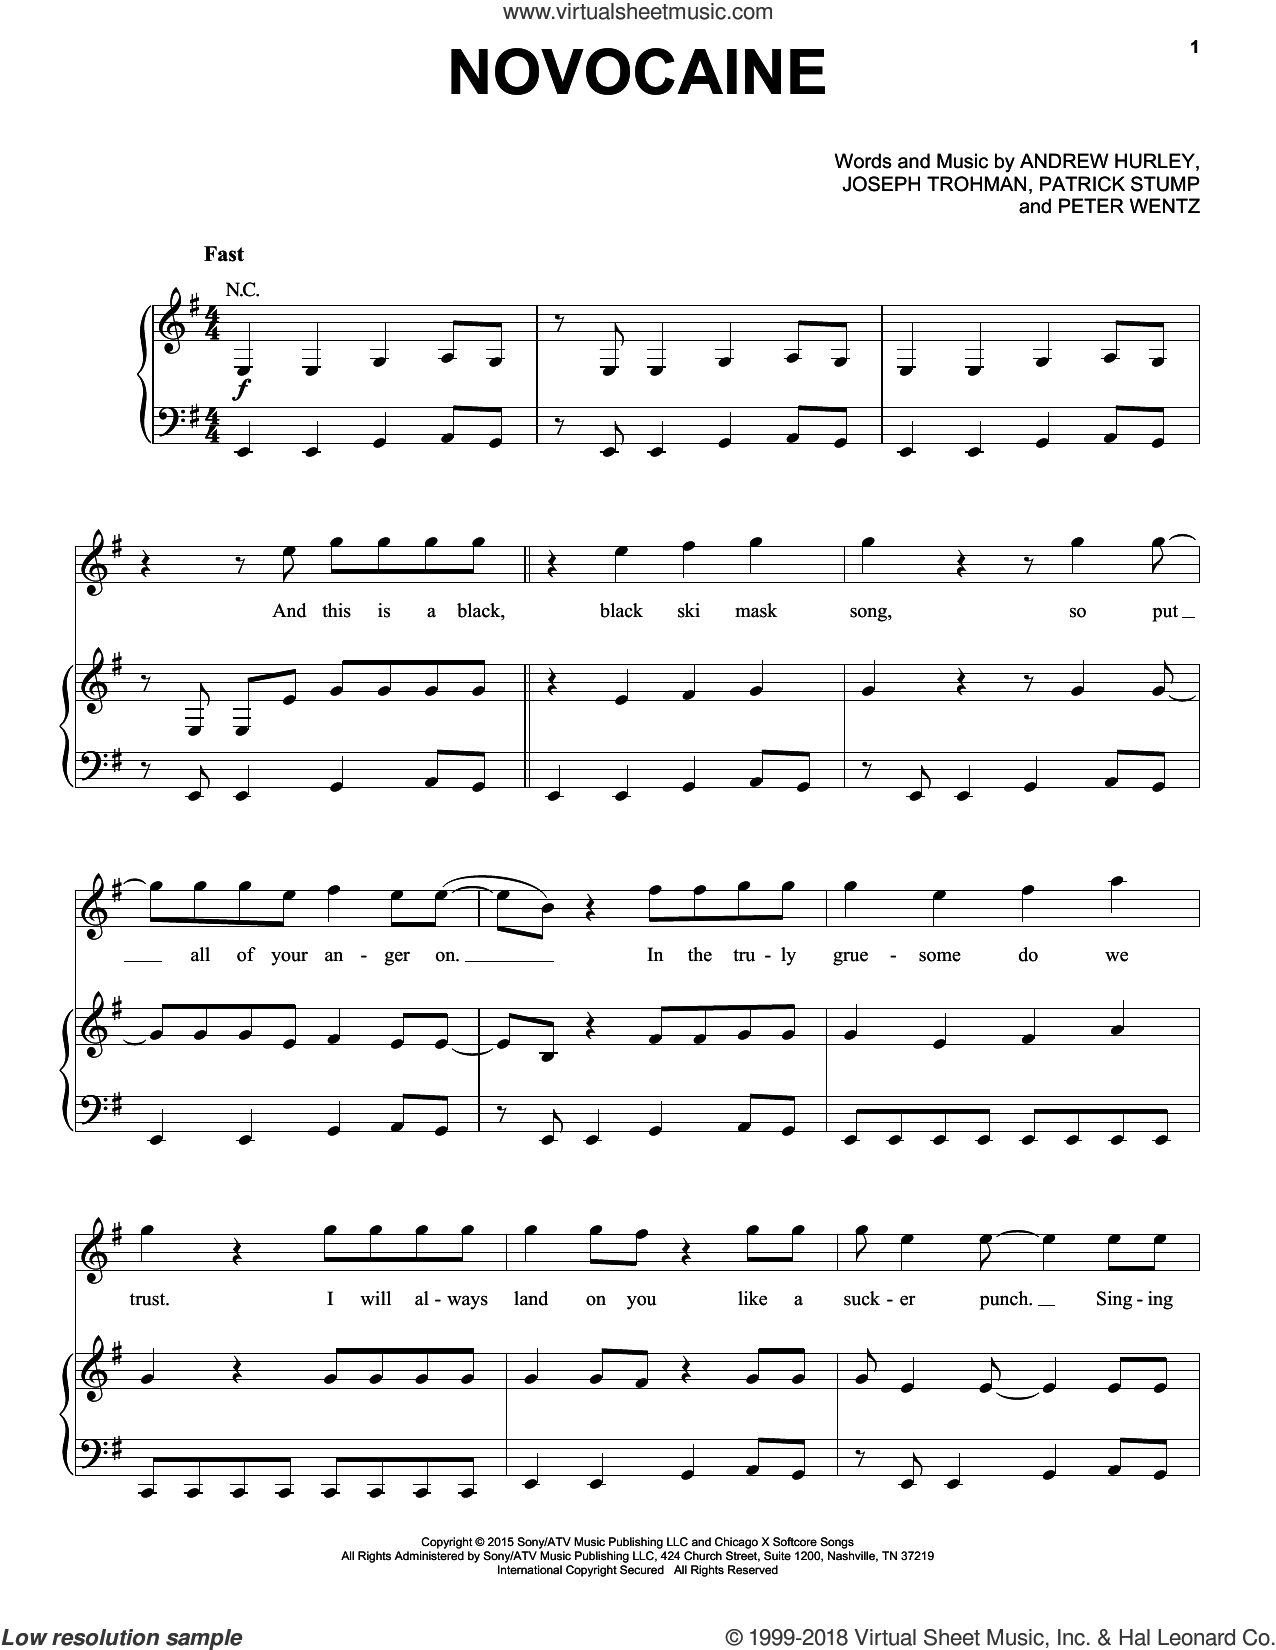 Novocaine sheet music for voice, piano or guitar by Fall Out Boy, Andrew Hurley, Joseph Trohman, Patrick Stump and Peter Wentz, intermediate skill level